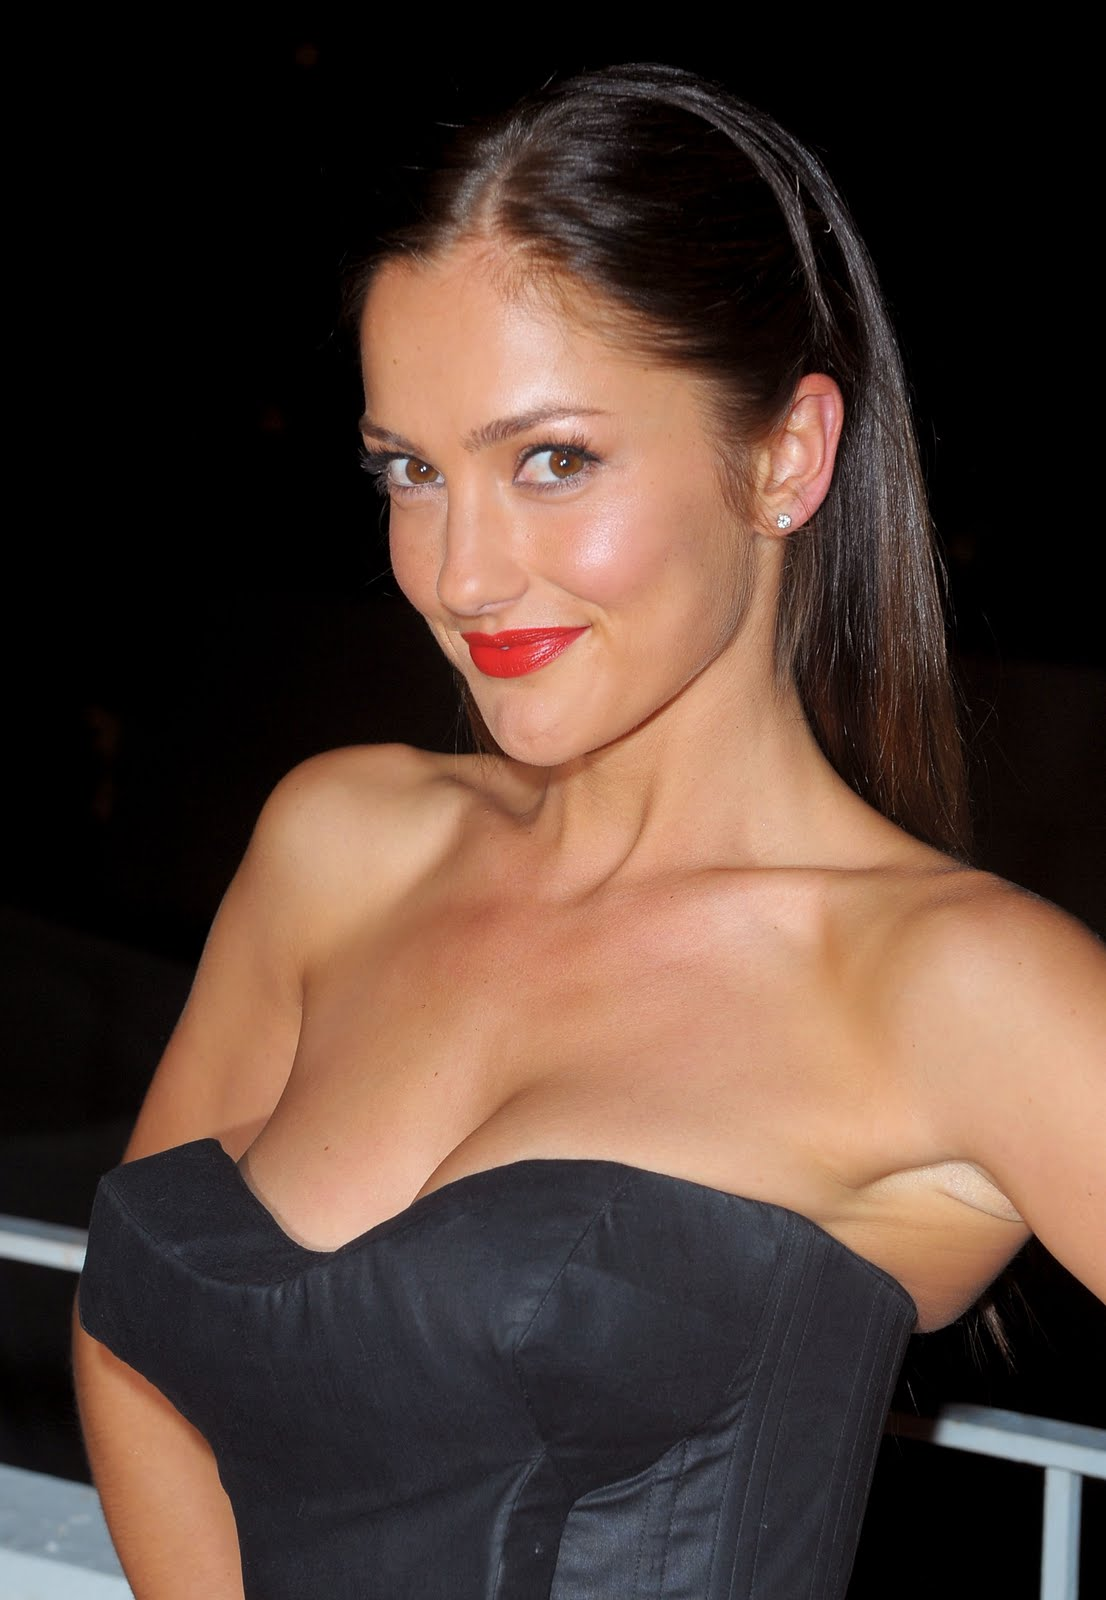 http://1.bp.blogspot.com/-JrbZoCRxIXg/Tc9lGAuqQQI/AAAAAAAACOI/KLHUo1592RM/s1600/Minka-Kelly-Hot-Cleavage-at-3rd-Annual-Art-of-Elysium-Heaven-Gala-HQ-x7.jpg